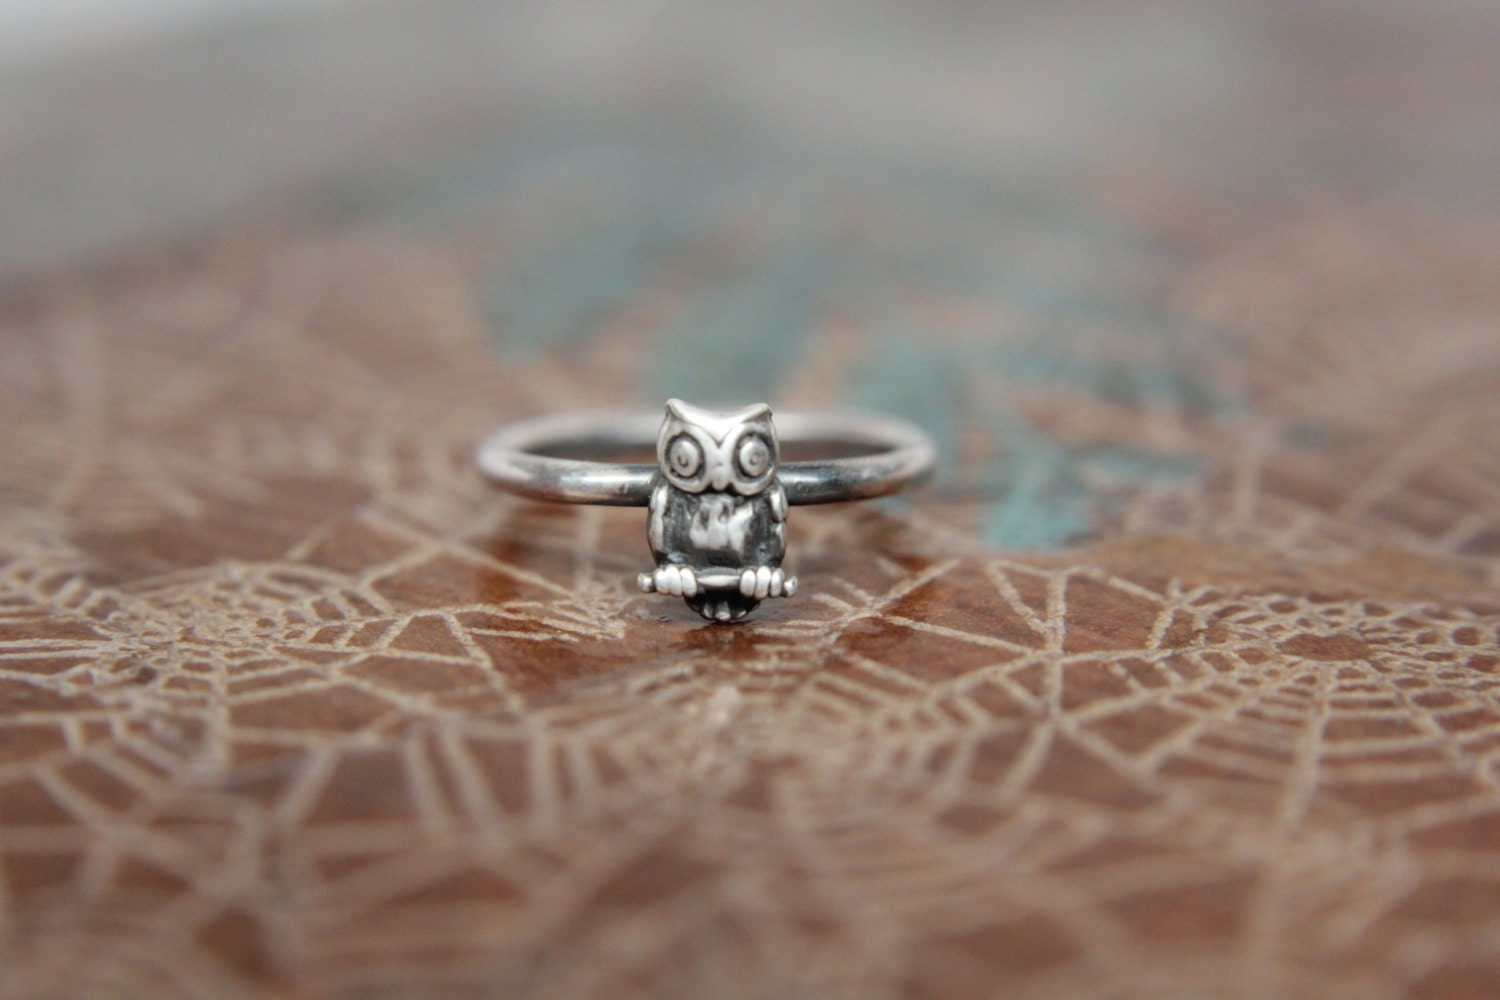 Dainty Little Perched Owl Stacking Ring. Wise Owl Stacking | Etsy